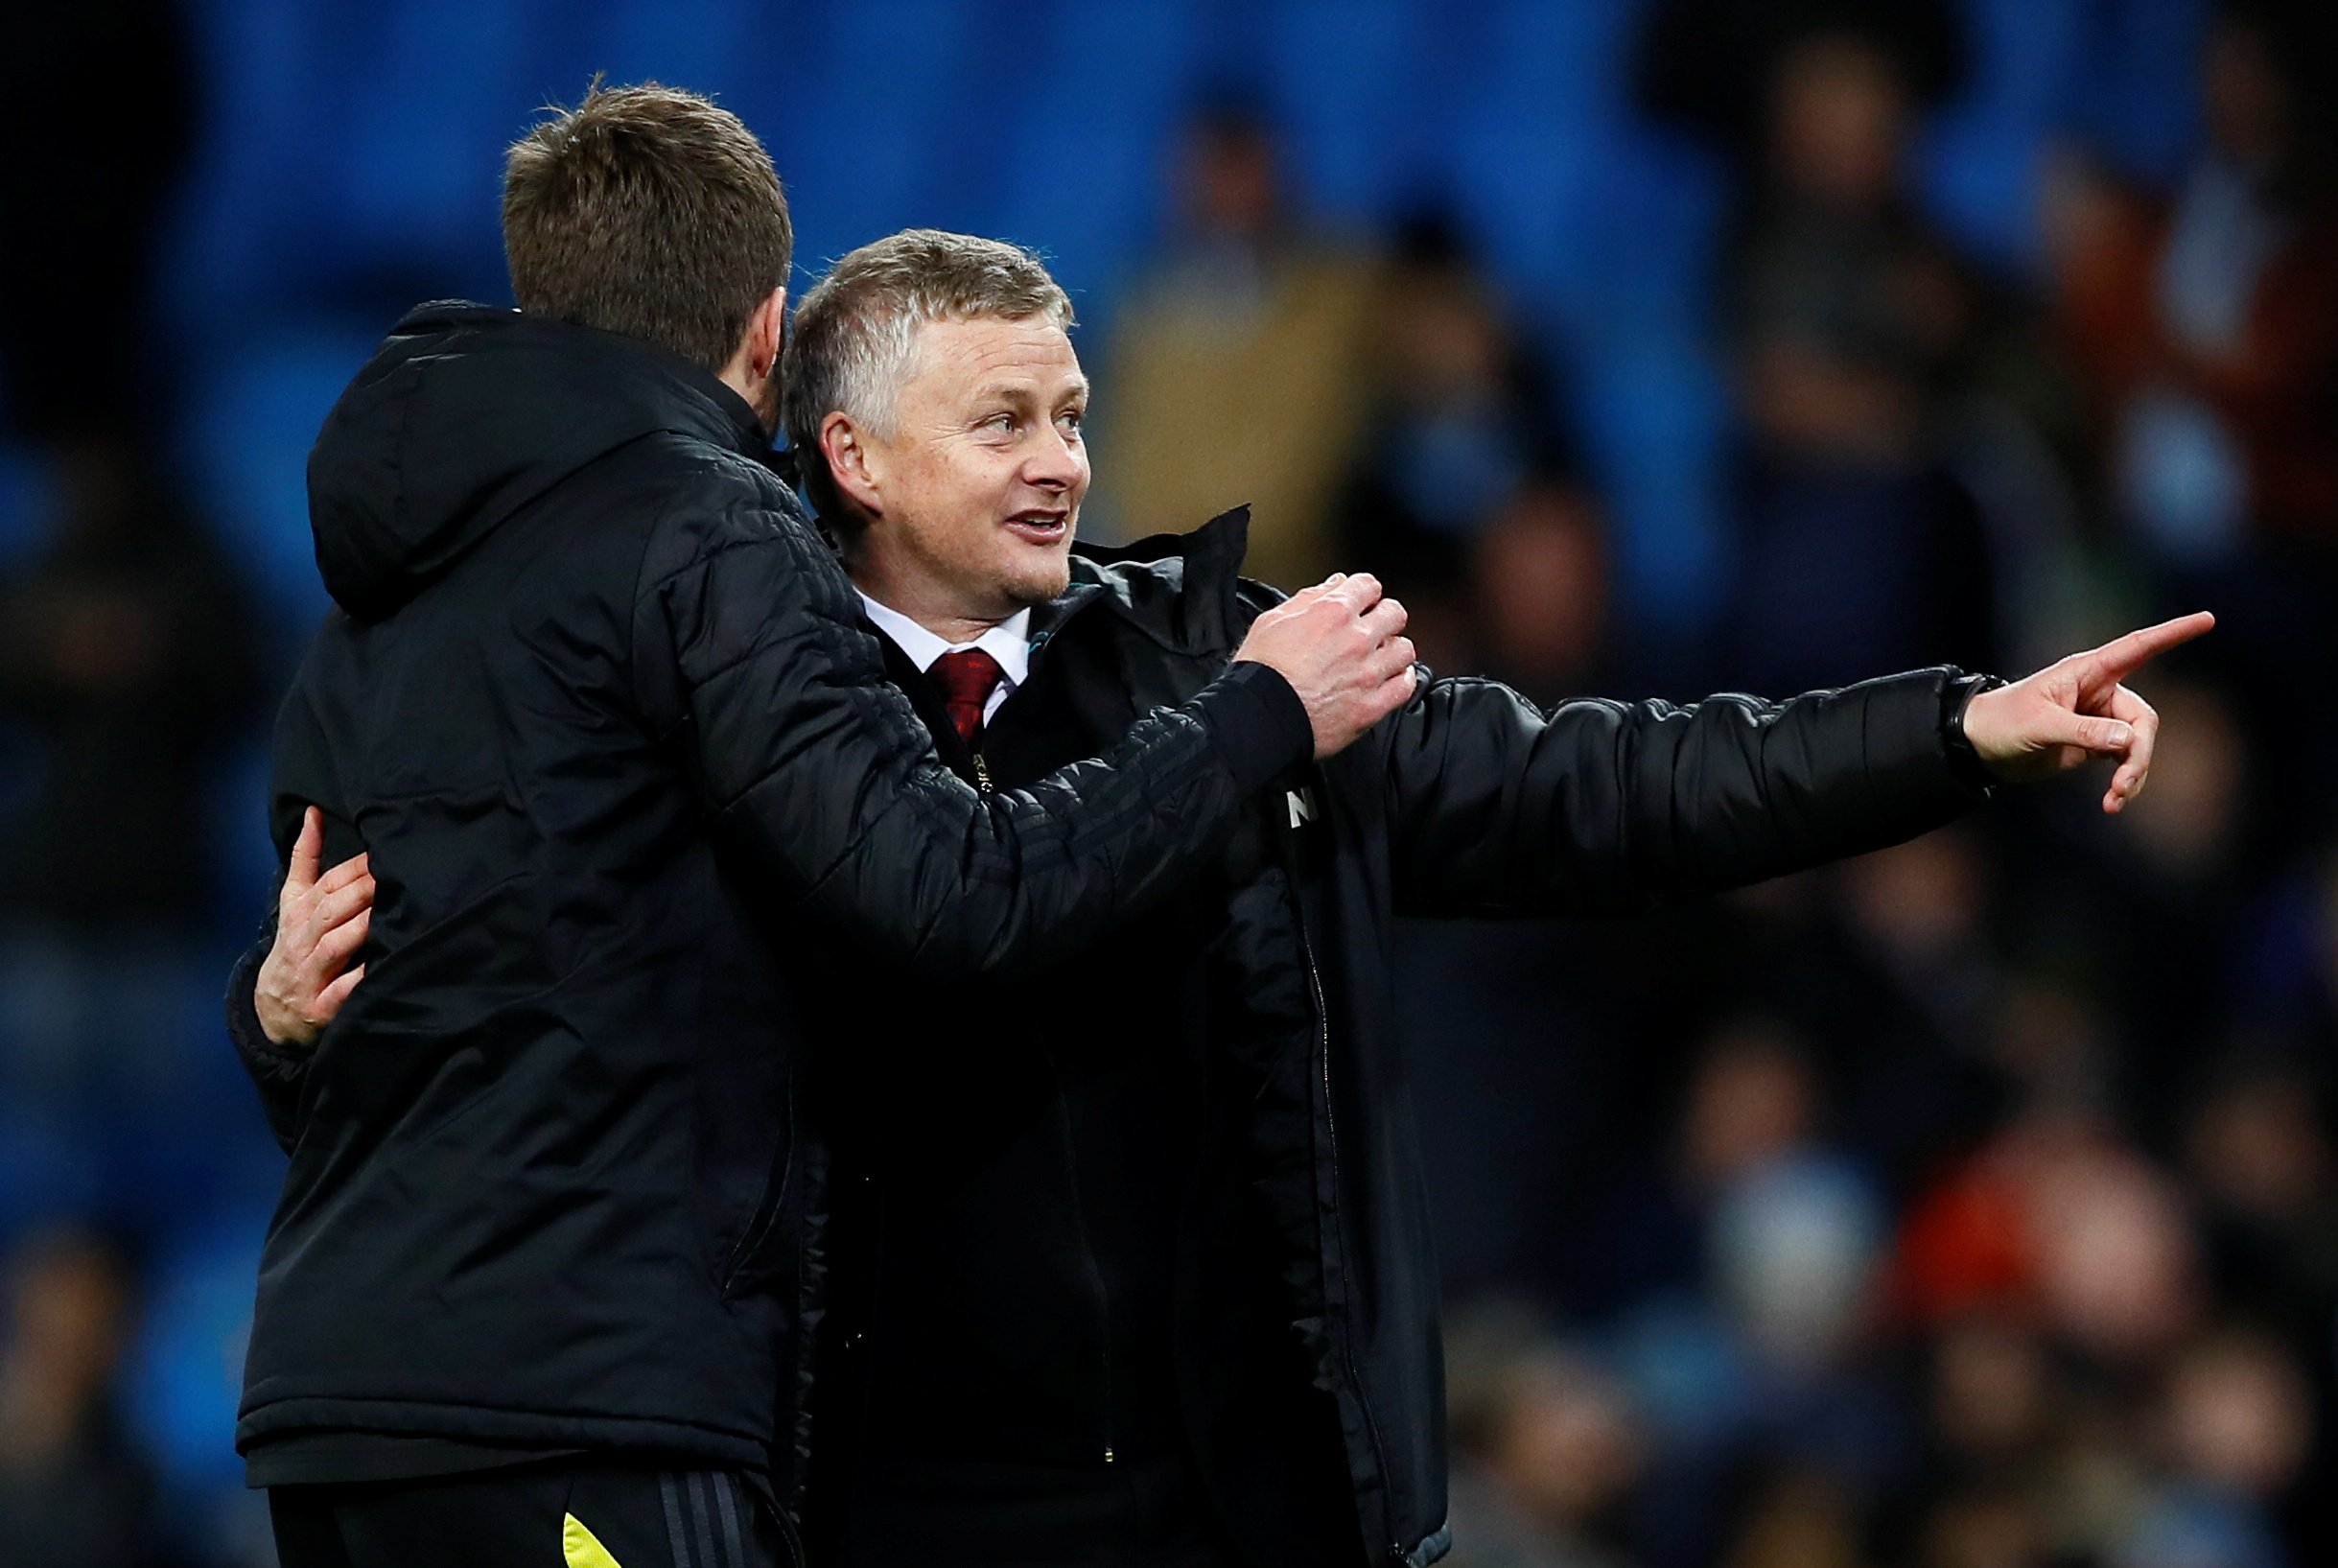 Ole doesn't doubt his abilities at Man United